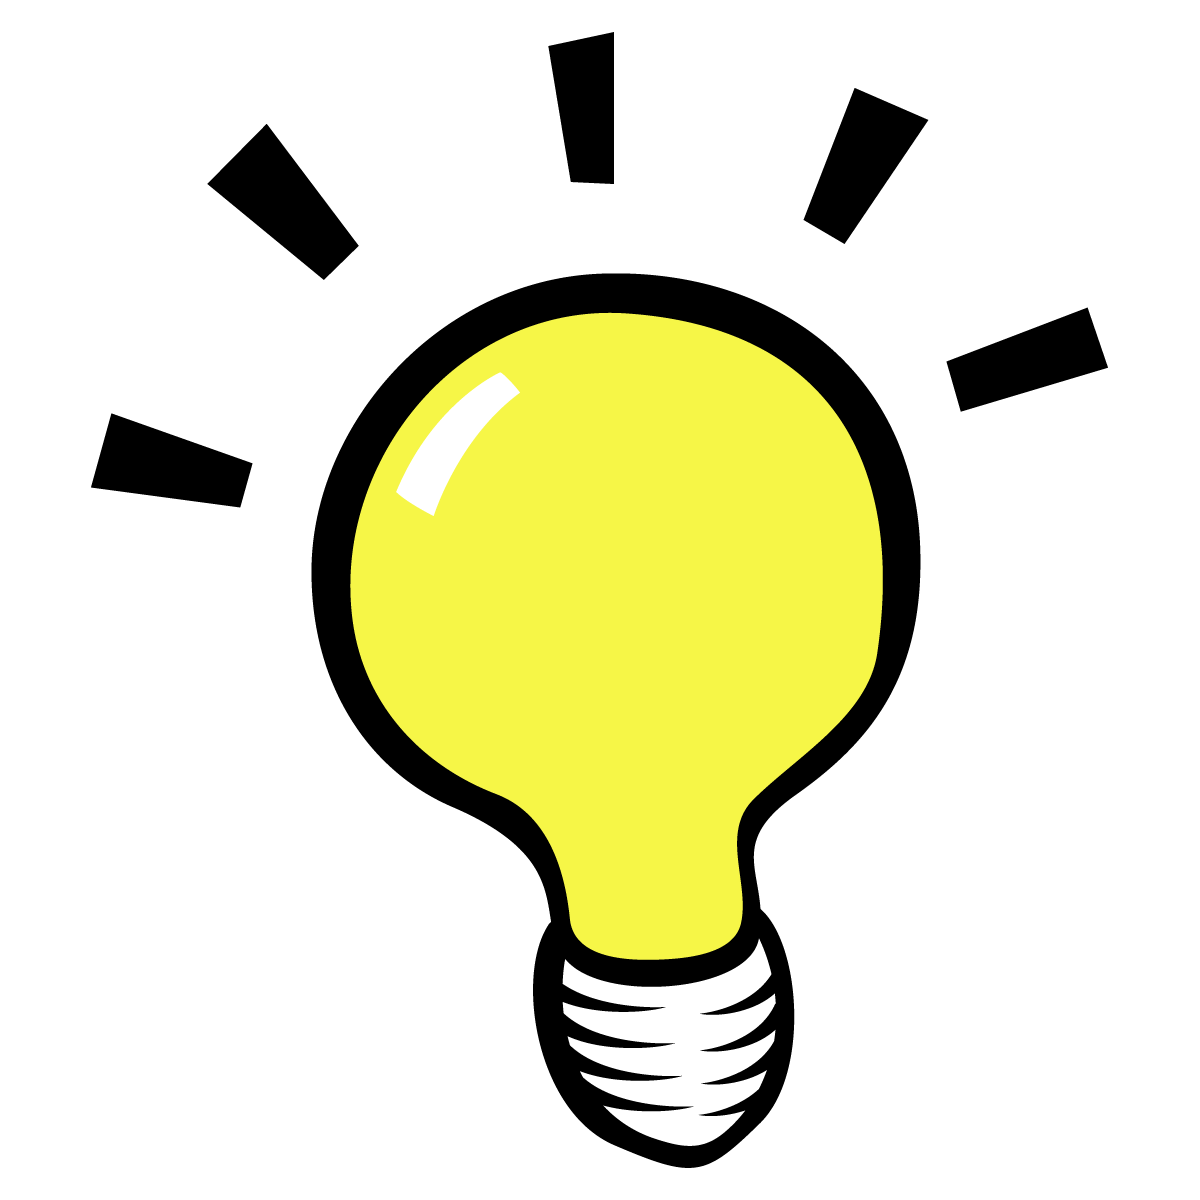 Bloodteria on emaze project. Conclusion clipart lightbulb